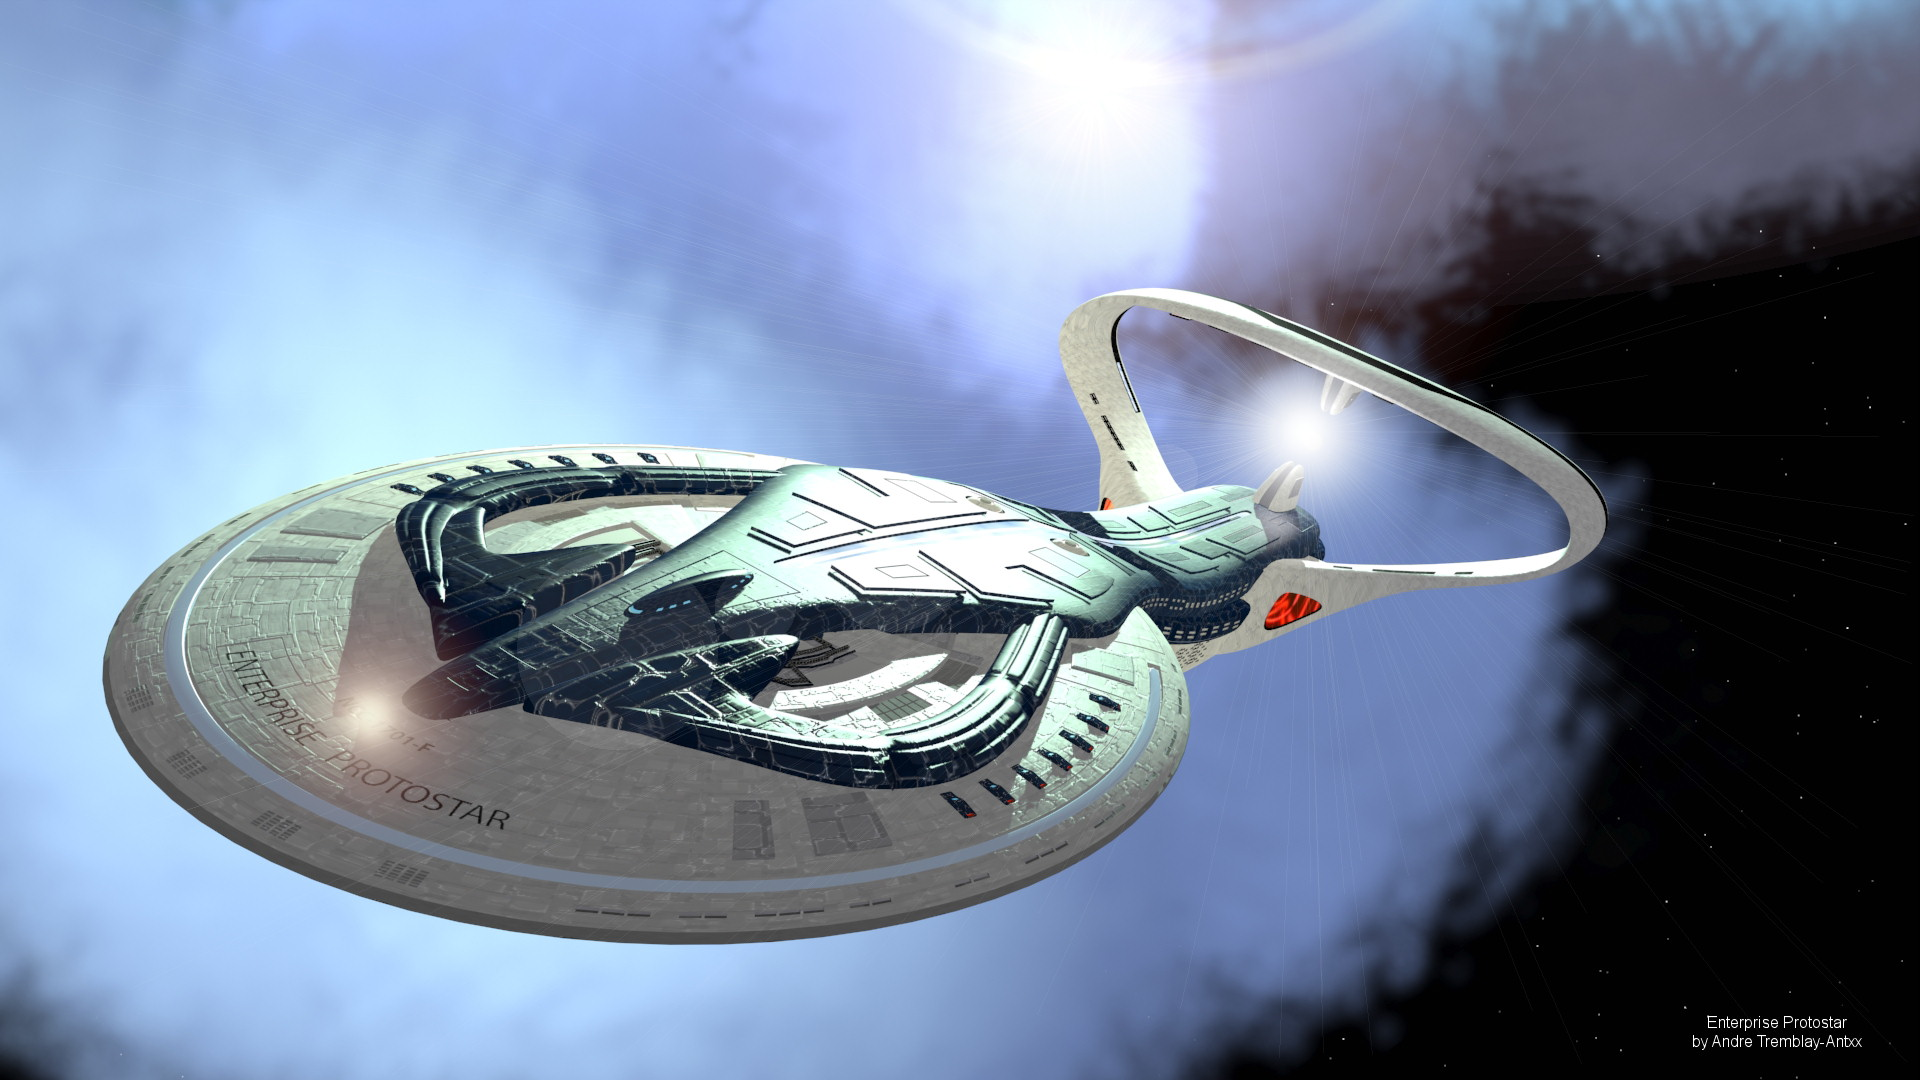 Fabuleux Star Trek Enterprise Protostar Wallpapers – 3dDub RK03